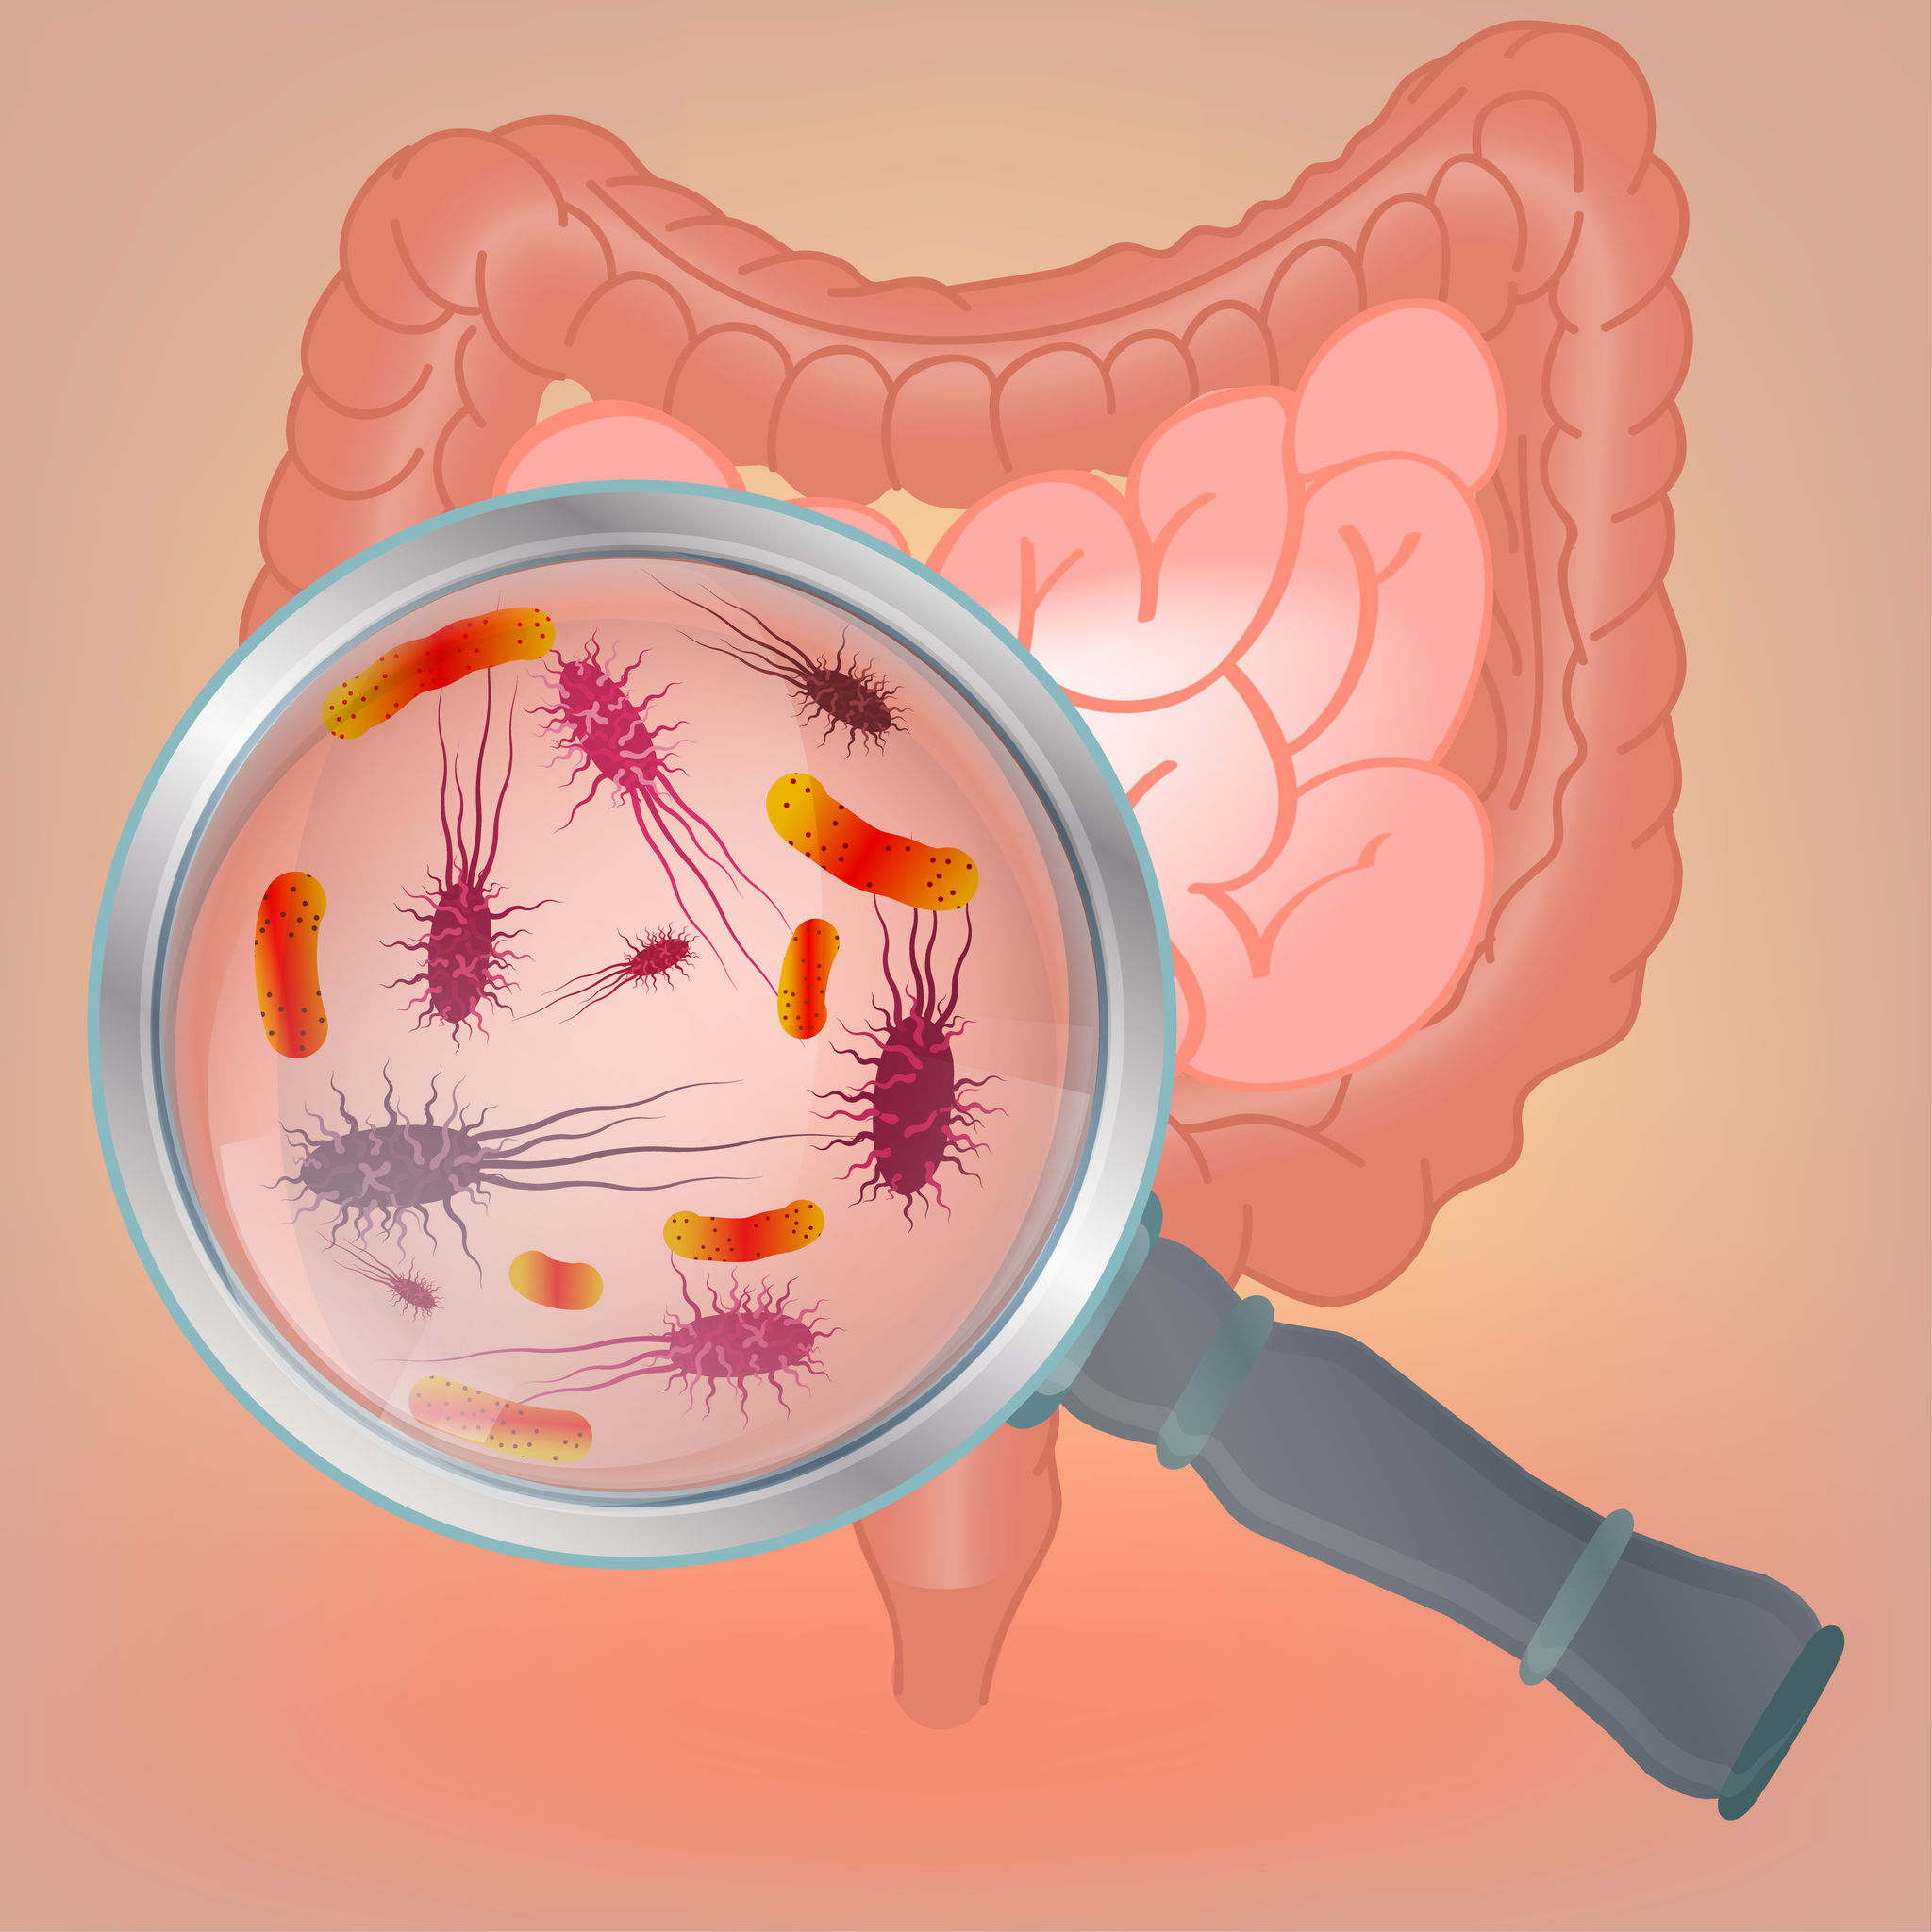 probiotics for acid reflux | Probiotic America